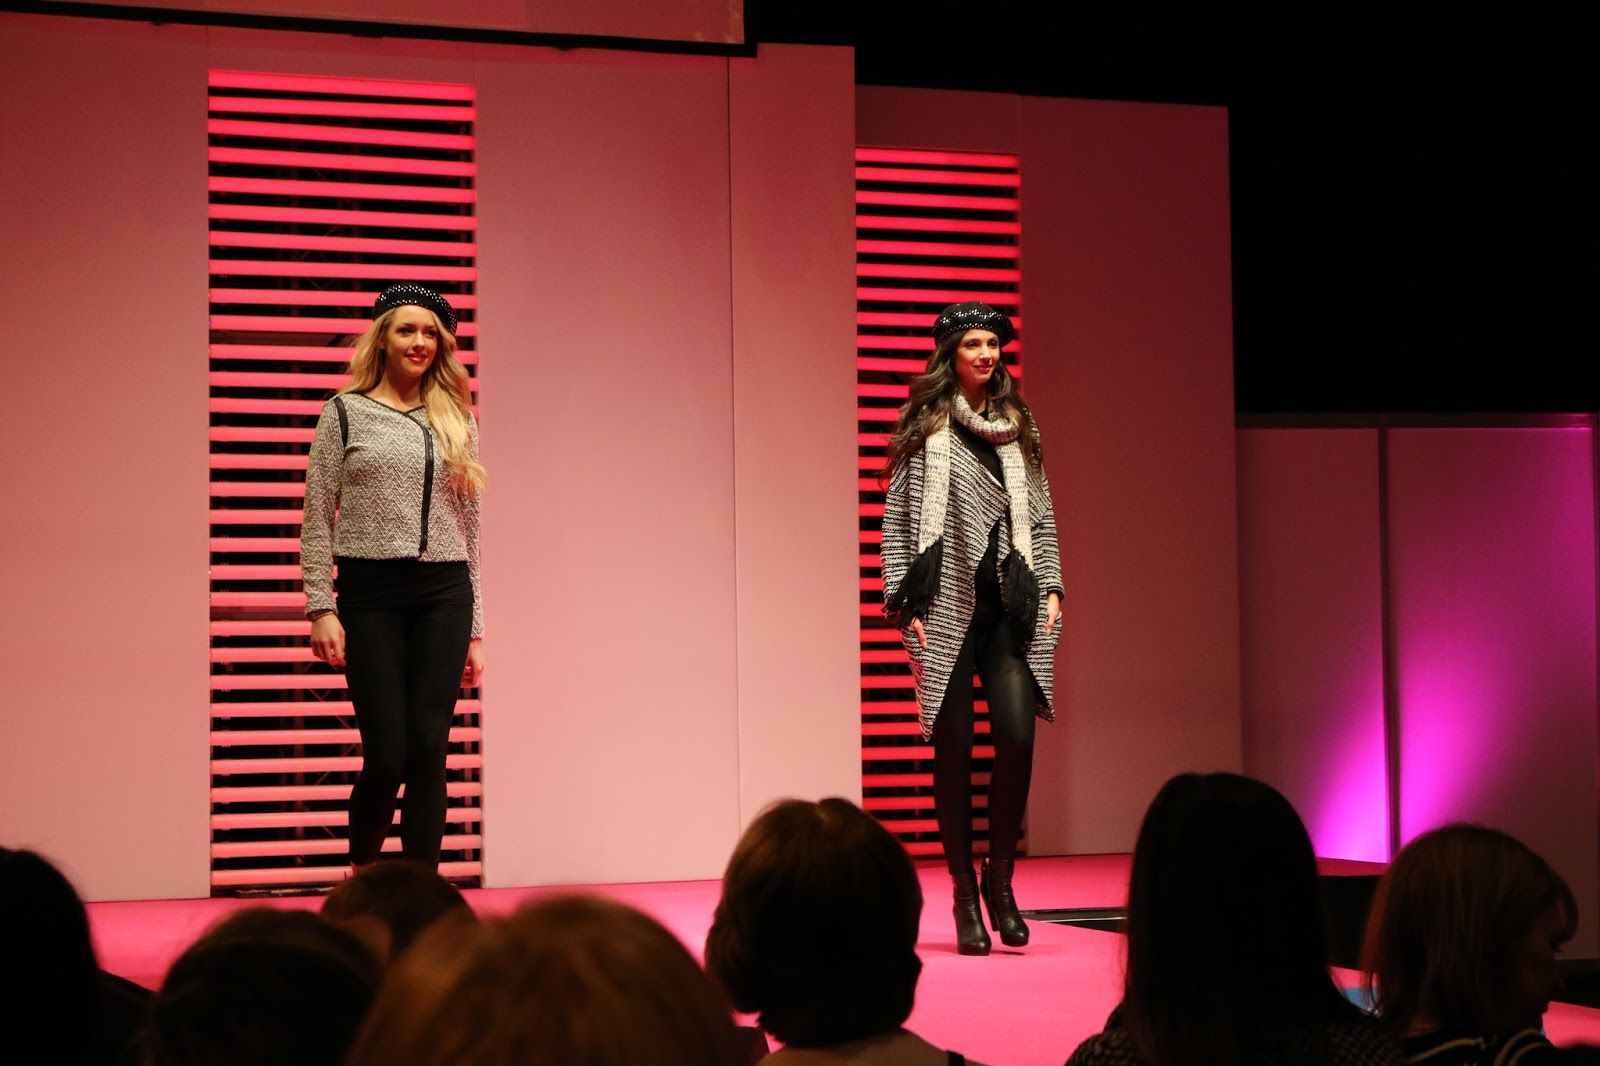 a photo of the fashion cat walk at girls day out show 2015. there are two models walking on the run way wearing winter clothes